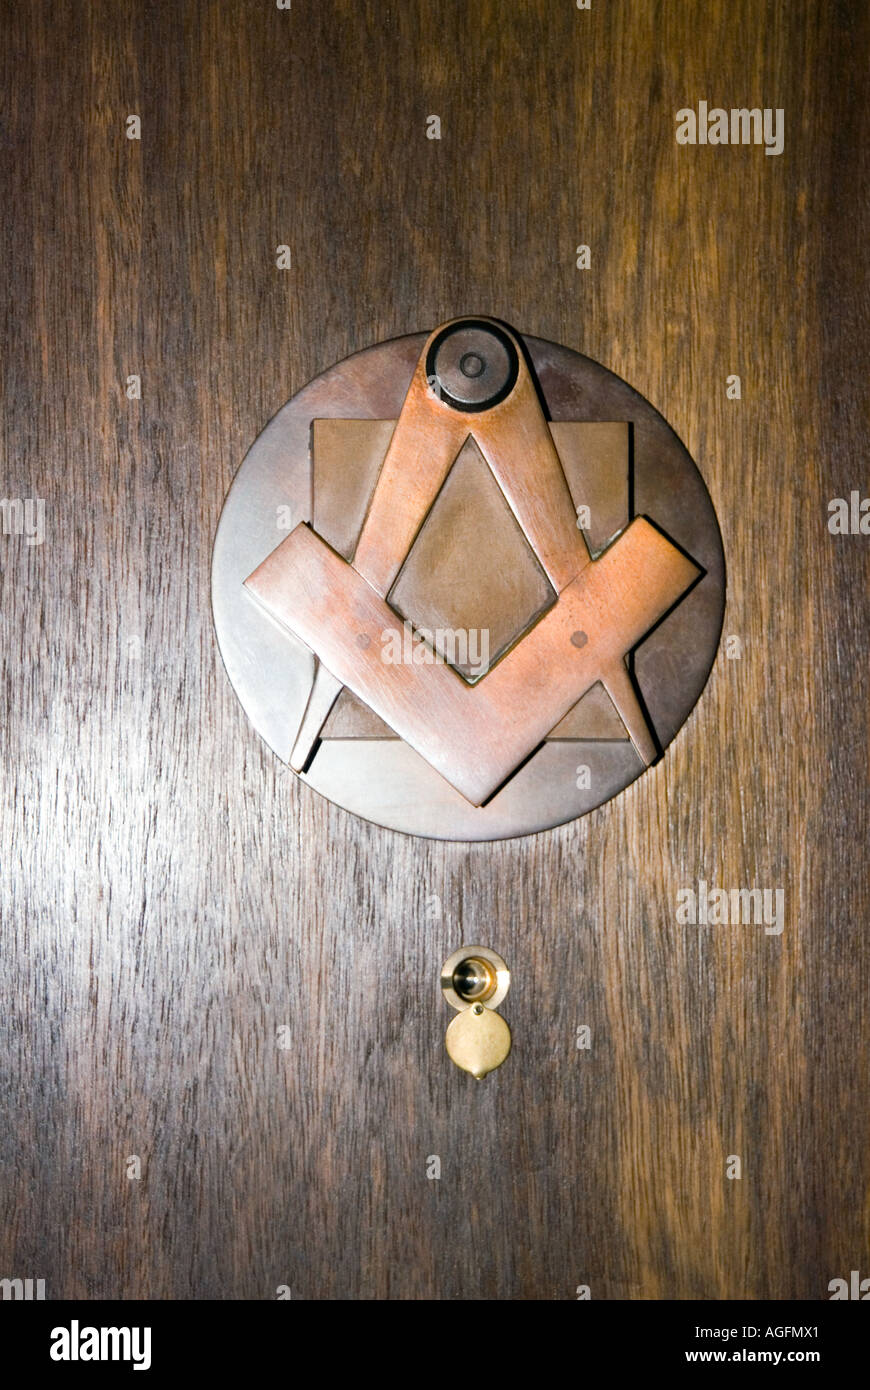 brass door knocker masonic symbols compass square inside a masonic lodge freemason freemasonry freemason secret H3MHRW AGFMX1 1AGFMX1 - Stock Image